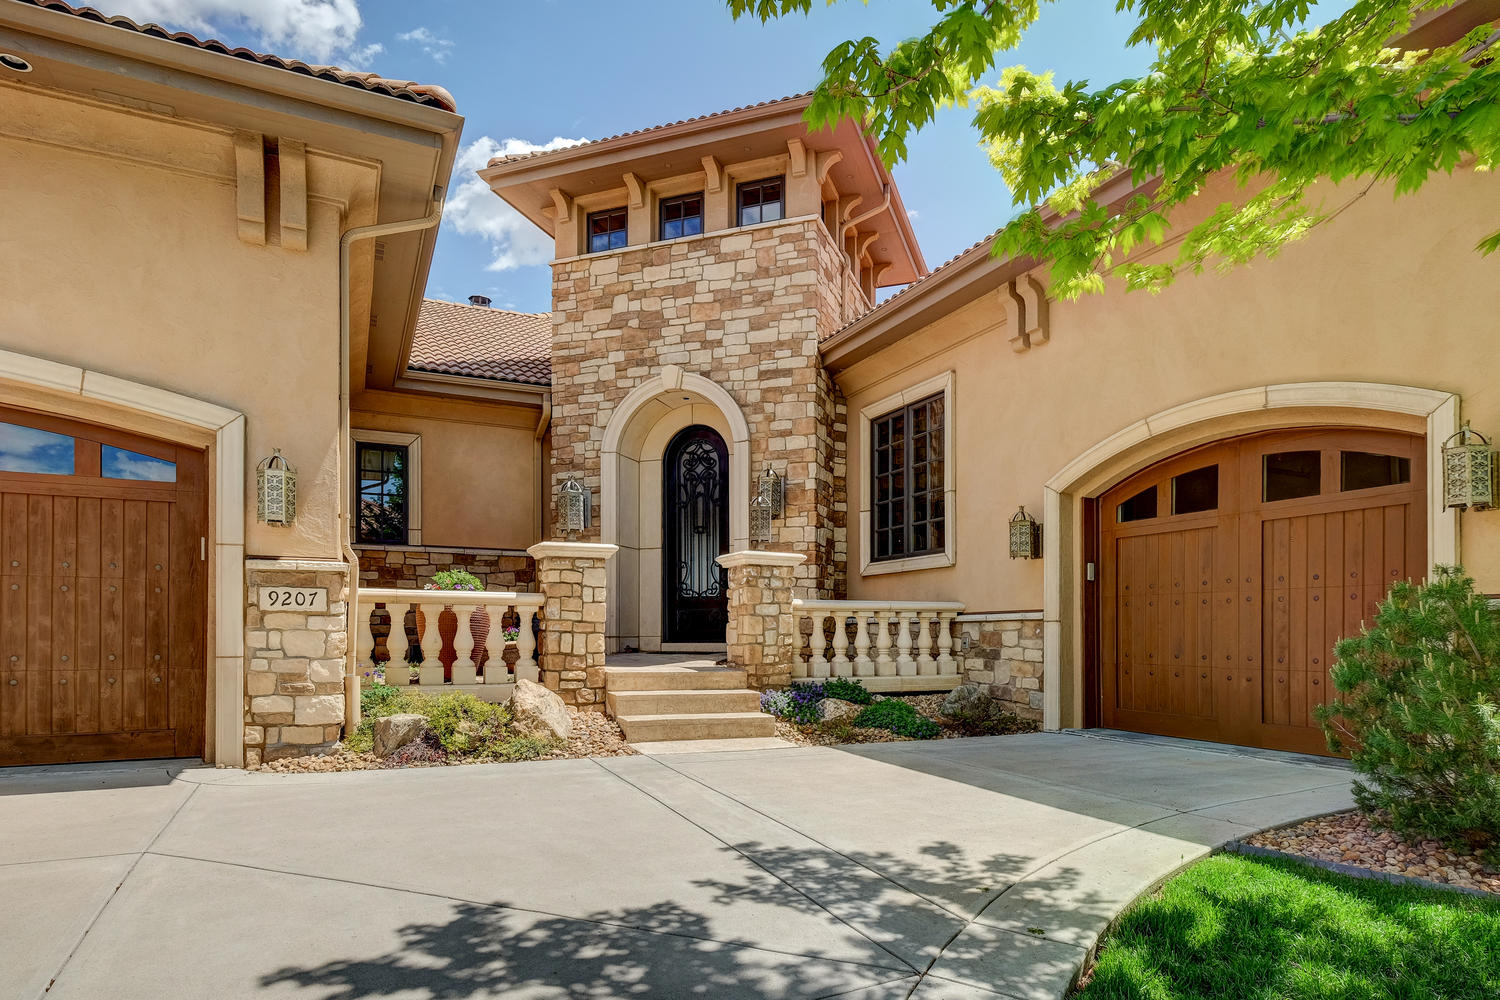 Single Family Home for Sale at 9207 E Wesley Ave Denver, Colorado, 80231 United States